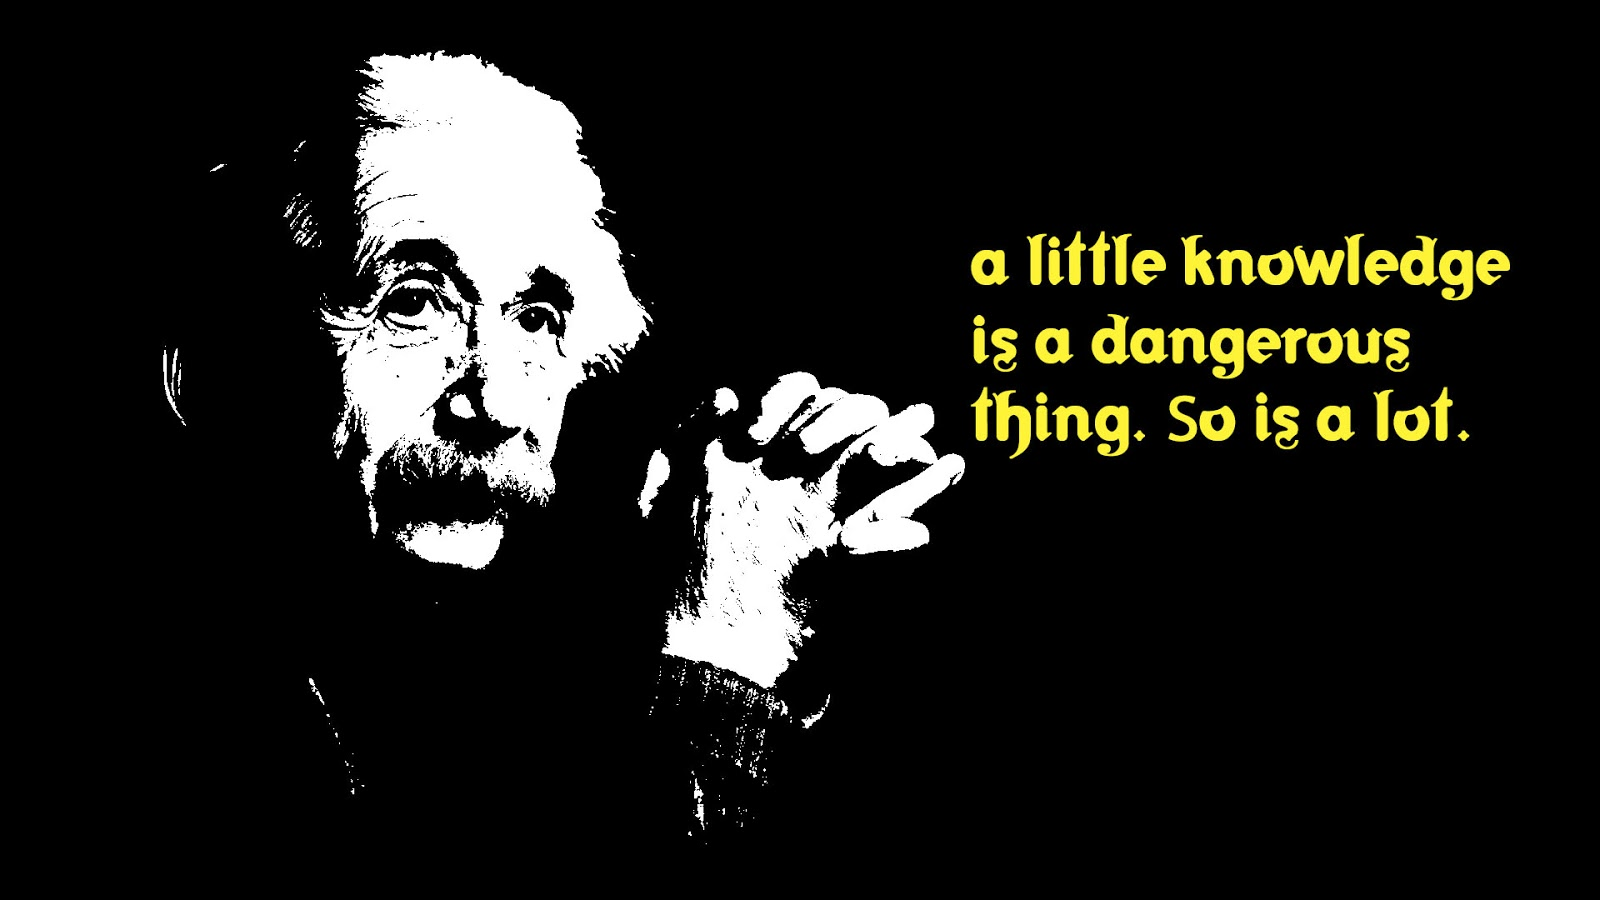 little knowledge is dangerous An essay on criticism is one of the first major poems written by the english writer alexander pope (1688-1744) it is the source of the famous quotations to err is human, to forgive divine, a little learning is a dang'rous thing (frequently misquoted as a little knowledge is a dang'rous thing), and fools rush in where angels fear to.